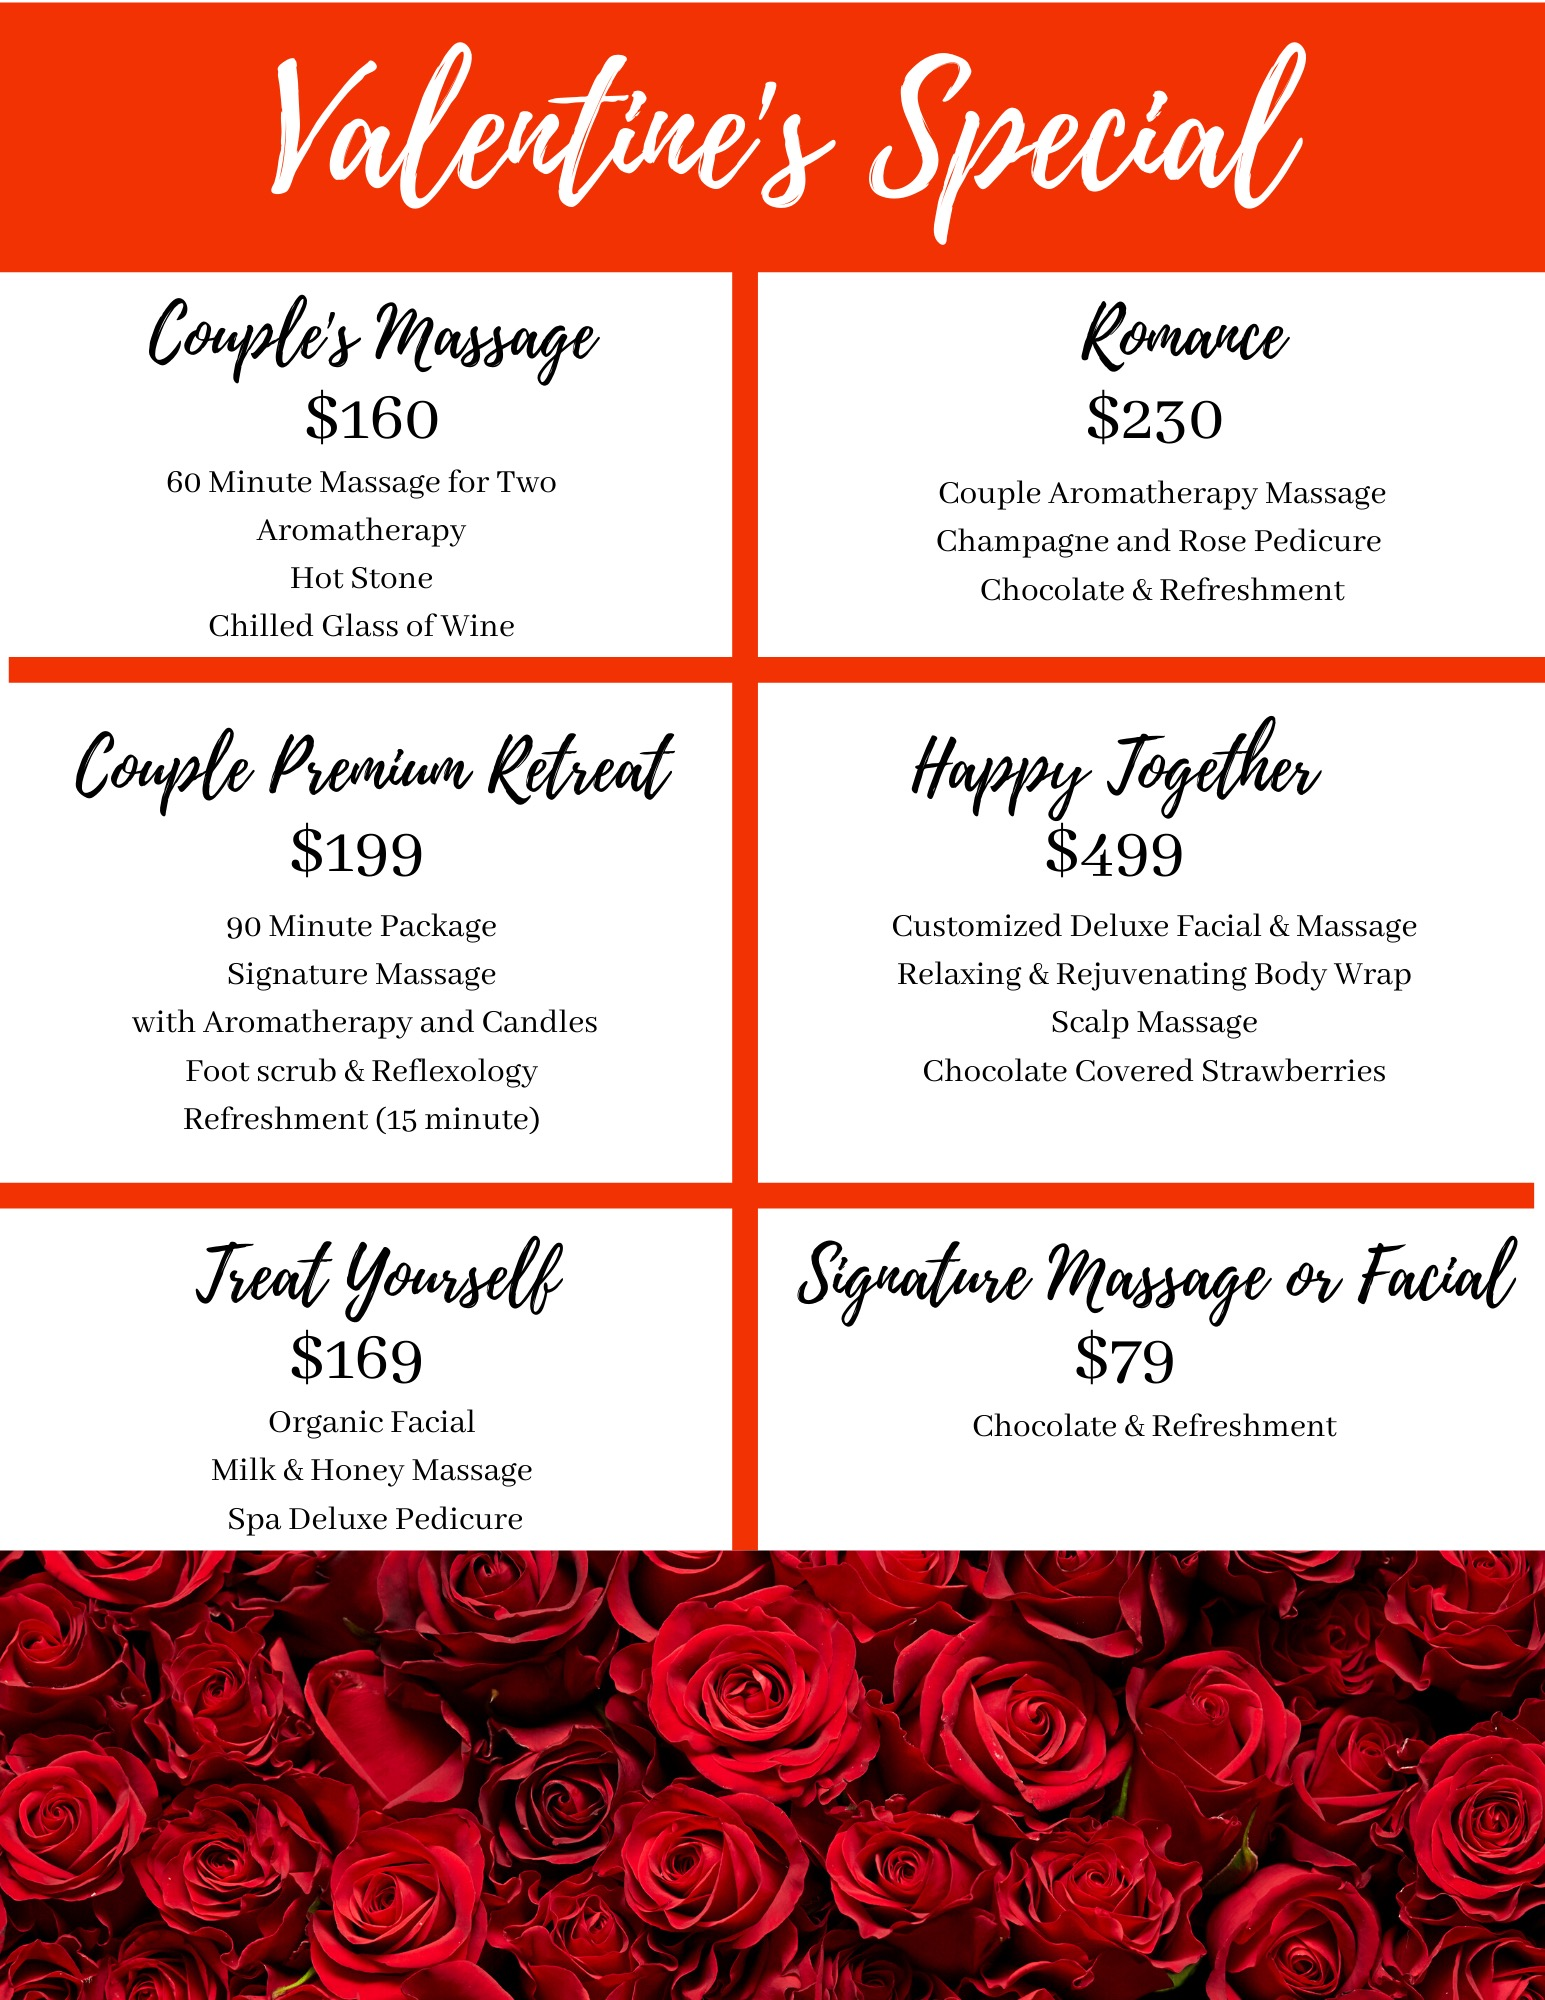 Coral Springs Couples Massage Valentines Day